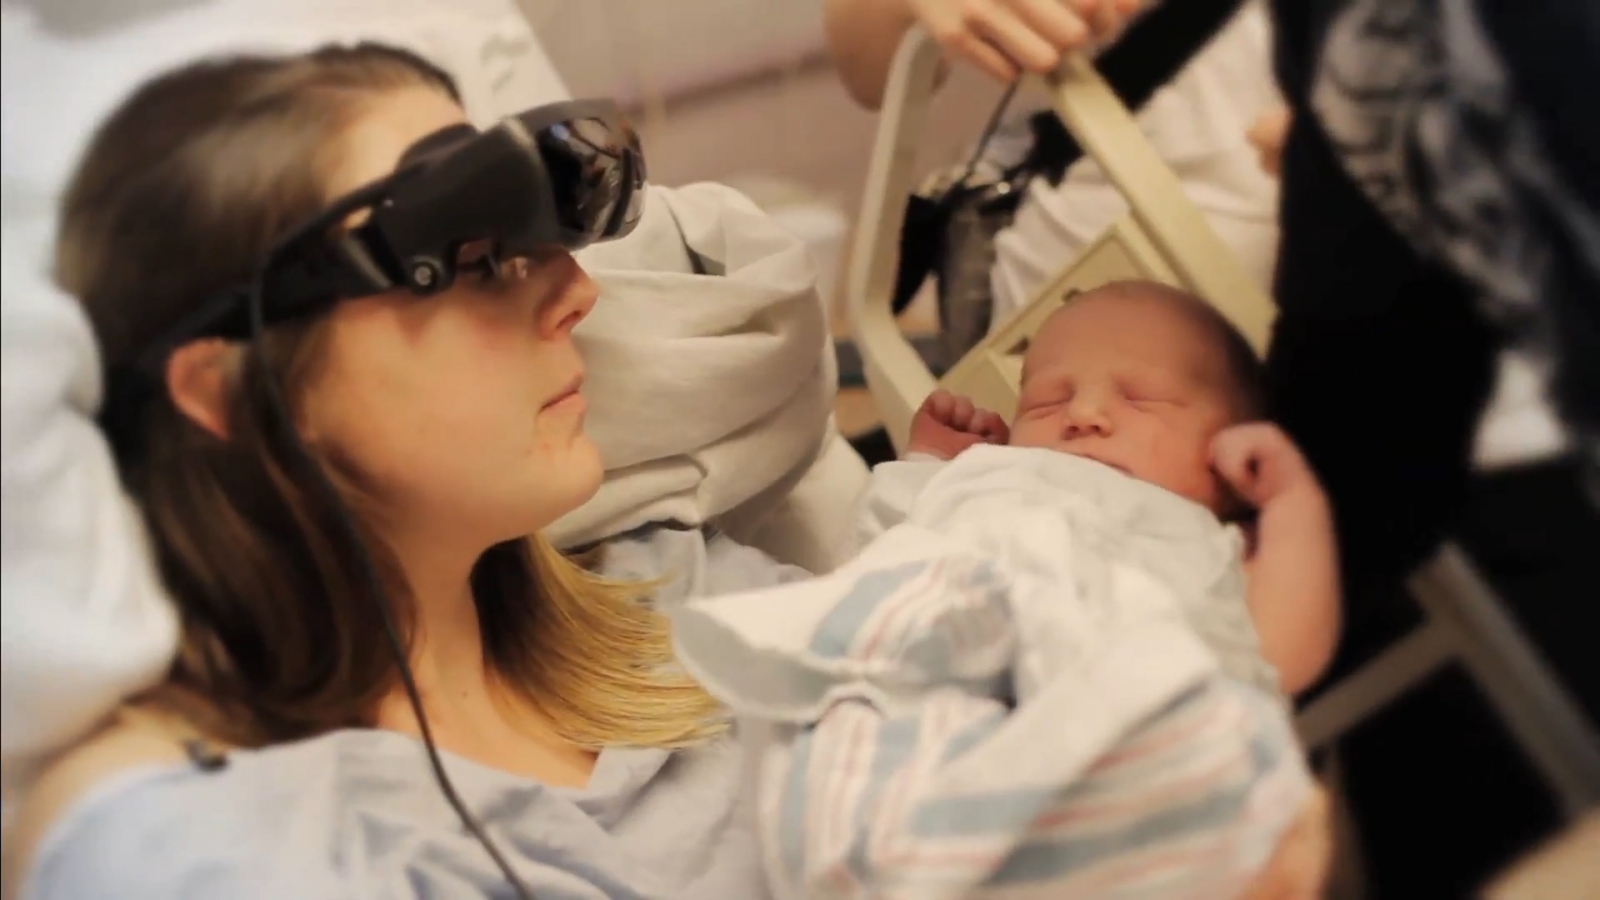 Blind woman sees her new baby for first time with special eyewear